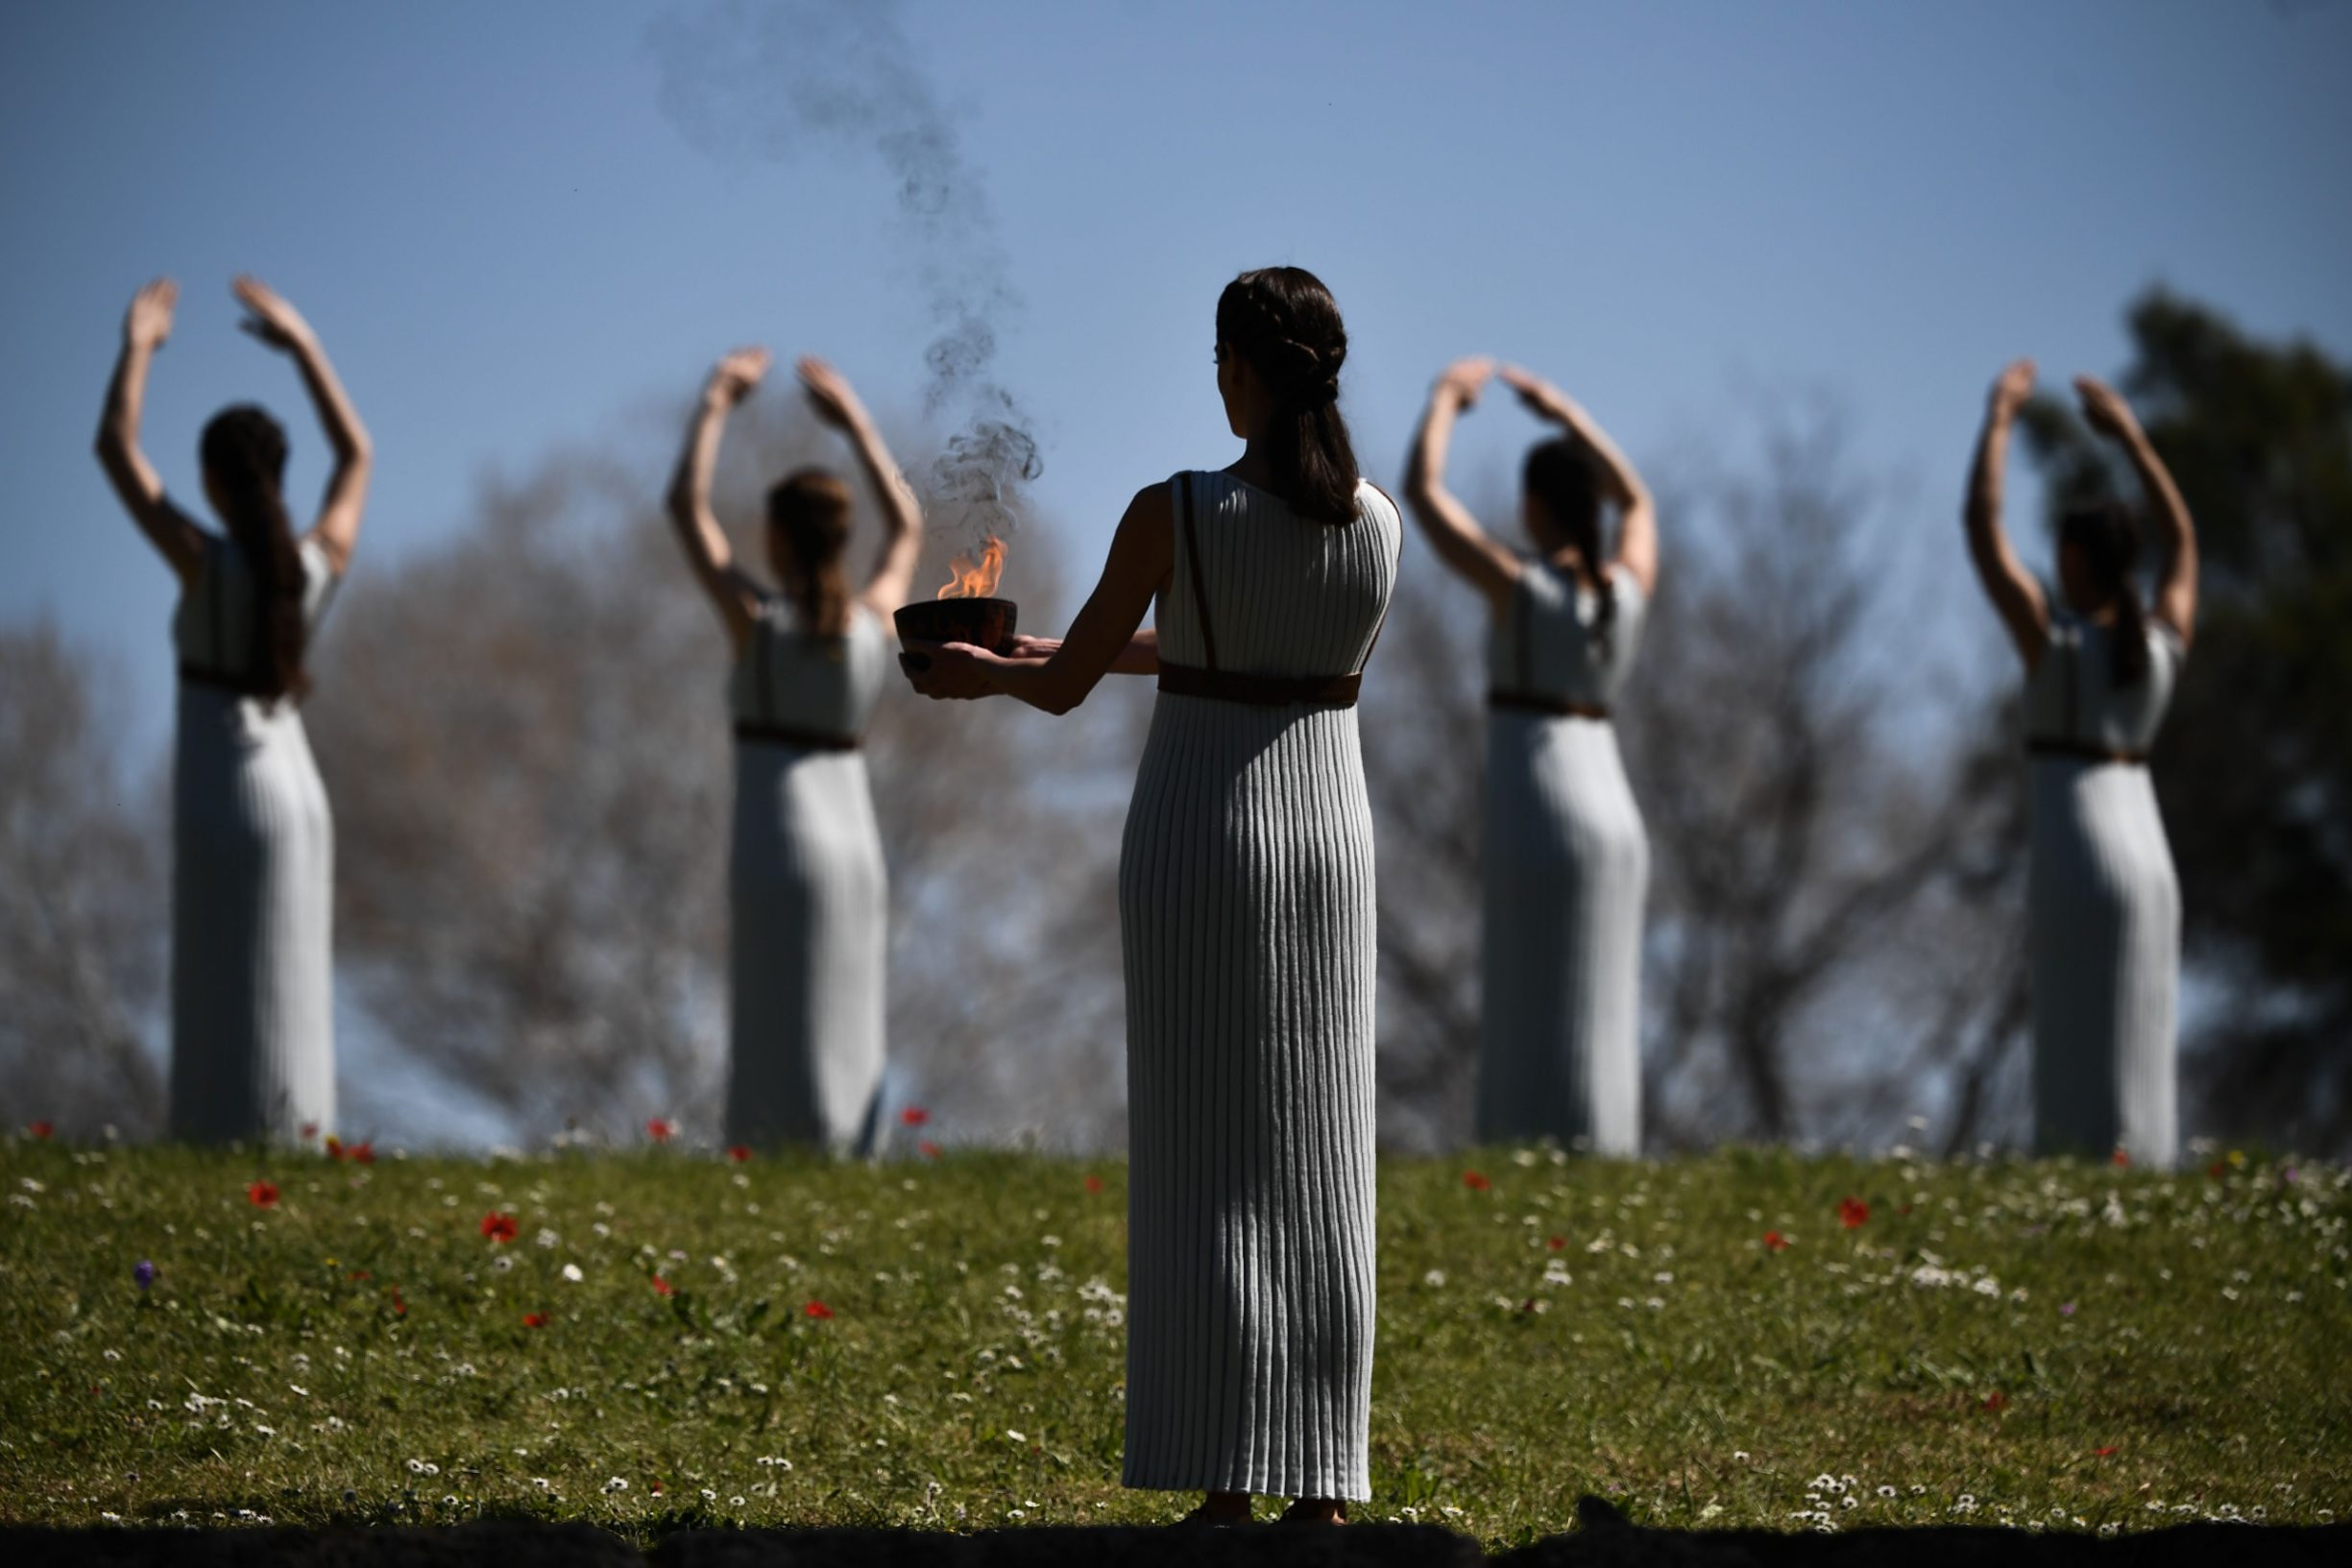 Women dressed as priestesses take part in the Olympic flame lighting ceremony in ancient Olympia, ahead of Tokyo 2020 Olympic Games on March 12, 2020. (Photo by ARIS MESSINIS / AFP)